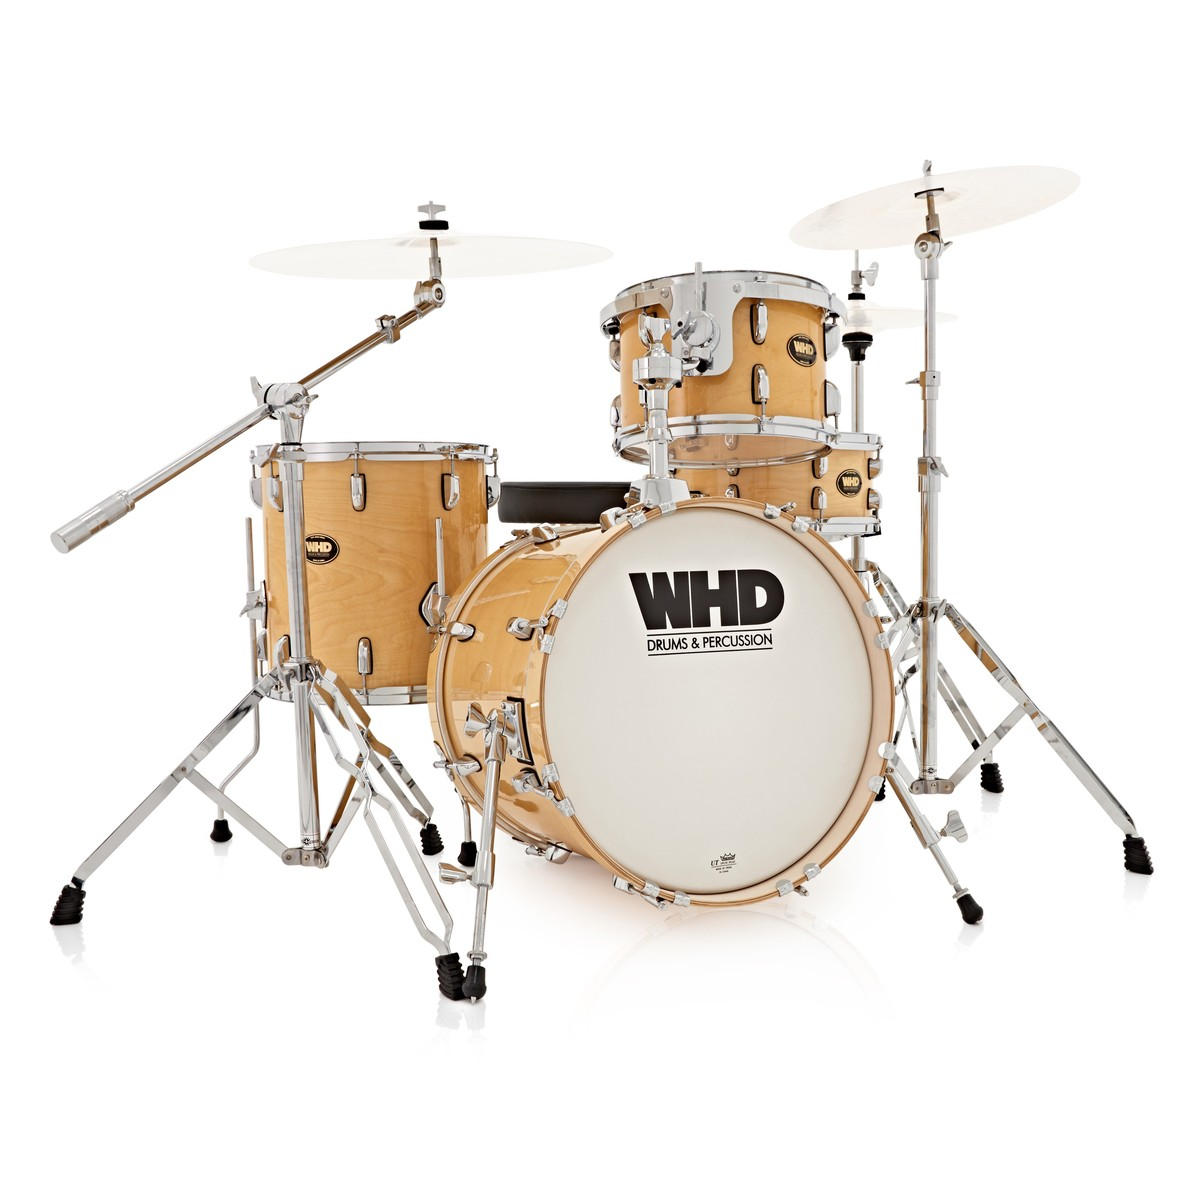 whd birch 4 piece jazz drum kit natural at gear4music. Black Bedroom Furniture Sets. Home Design Ideas